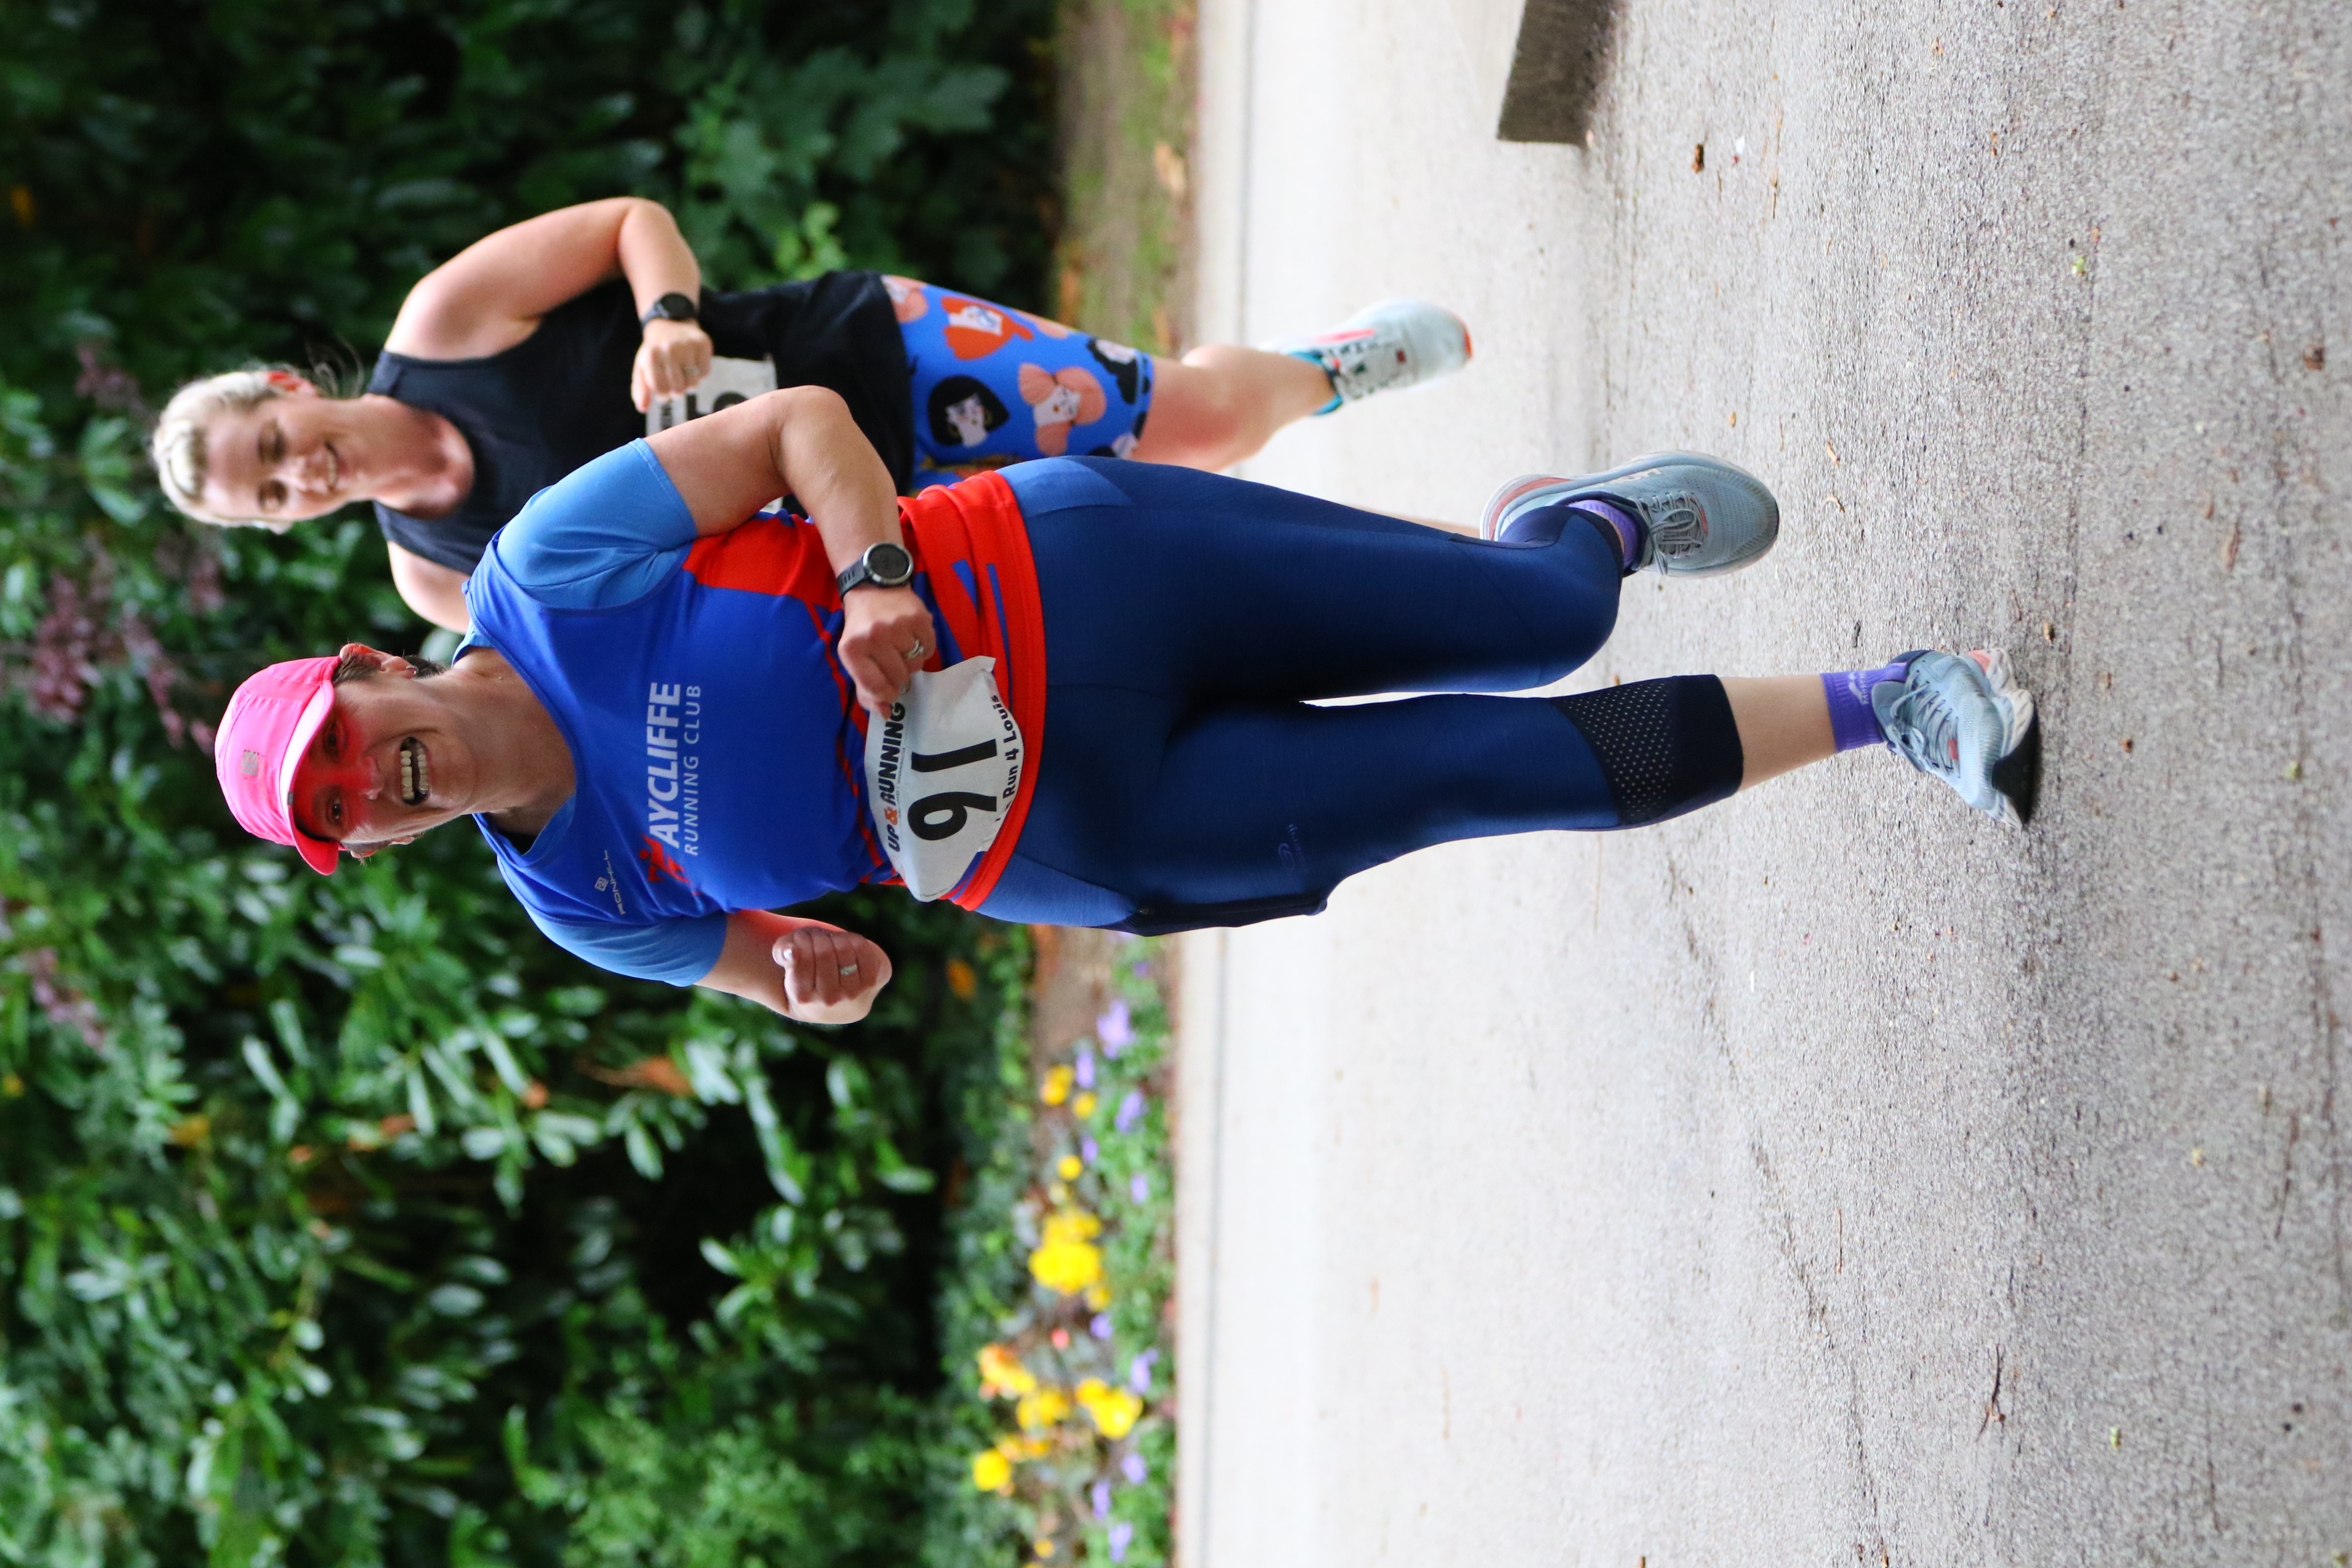 Donna CAMPBELL at the Run 4 Louis event - Photo - Karen HARLAND